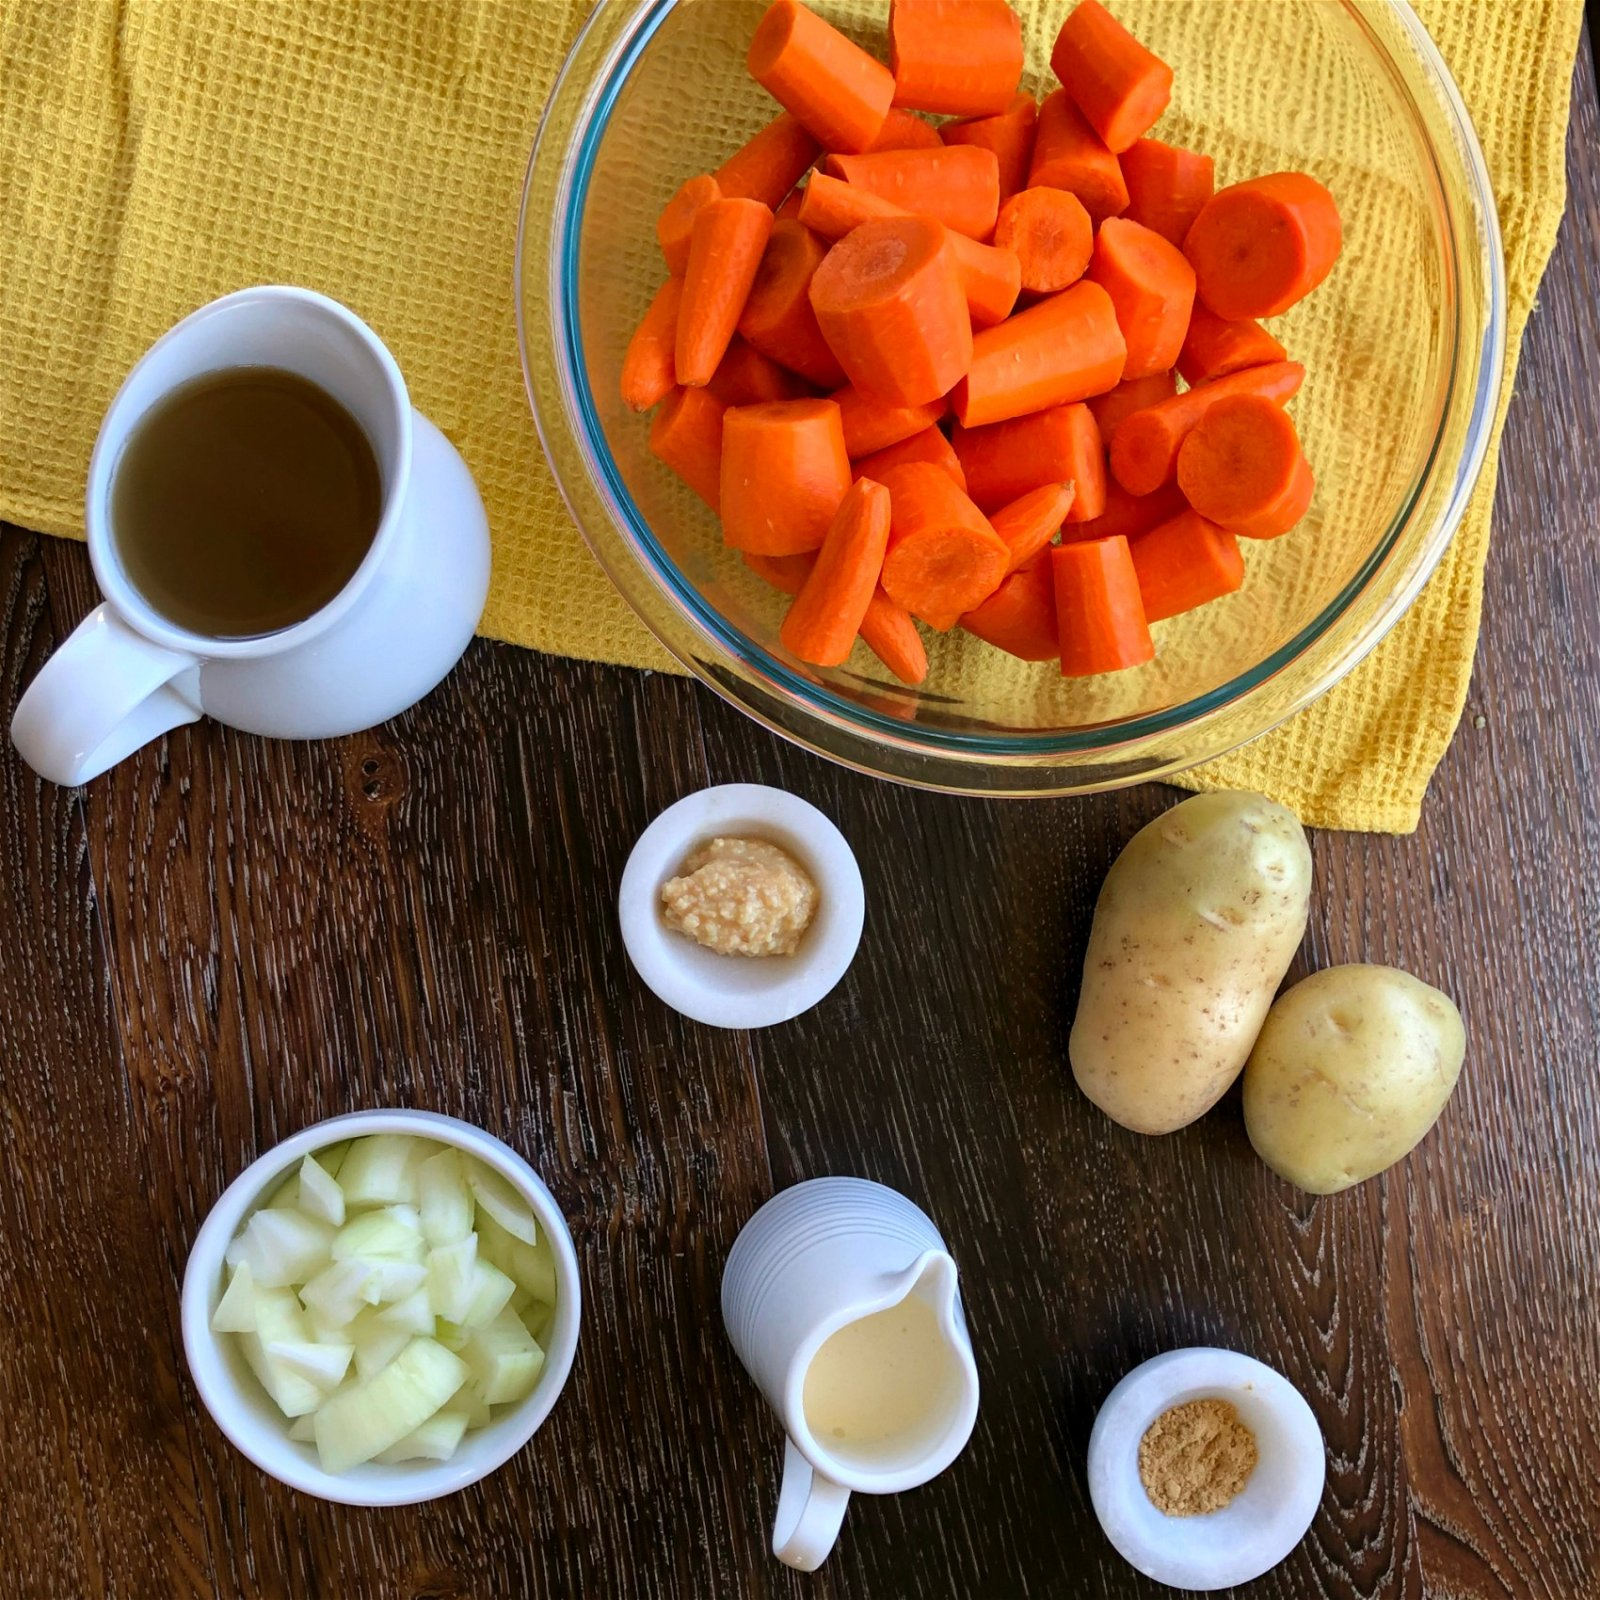 Ingredients for Carrot & Ginger Soup